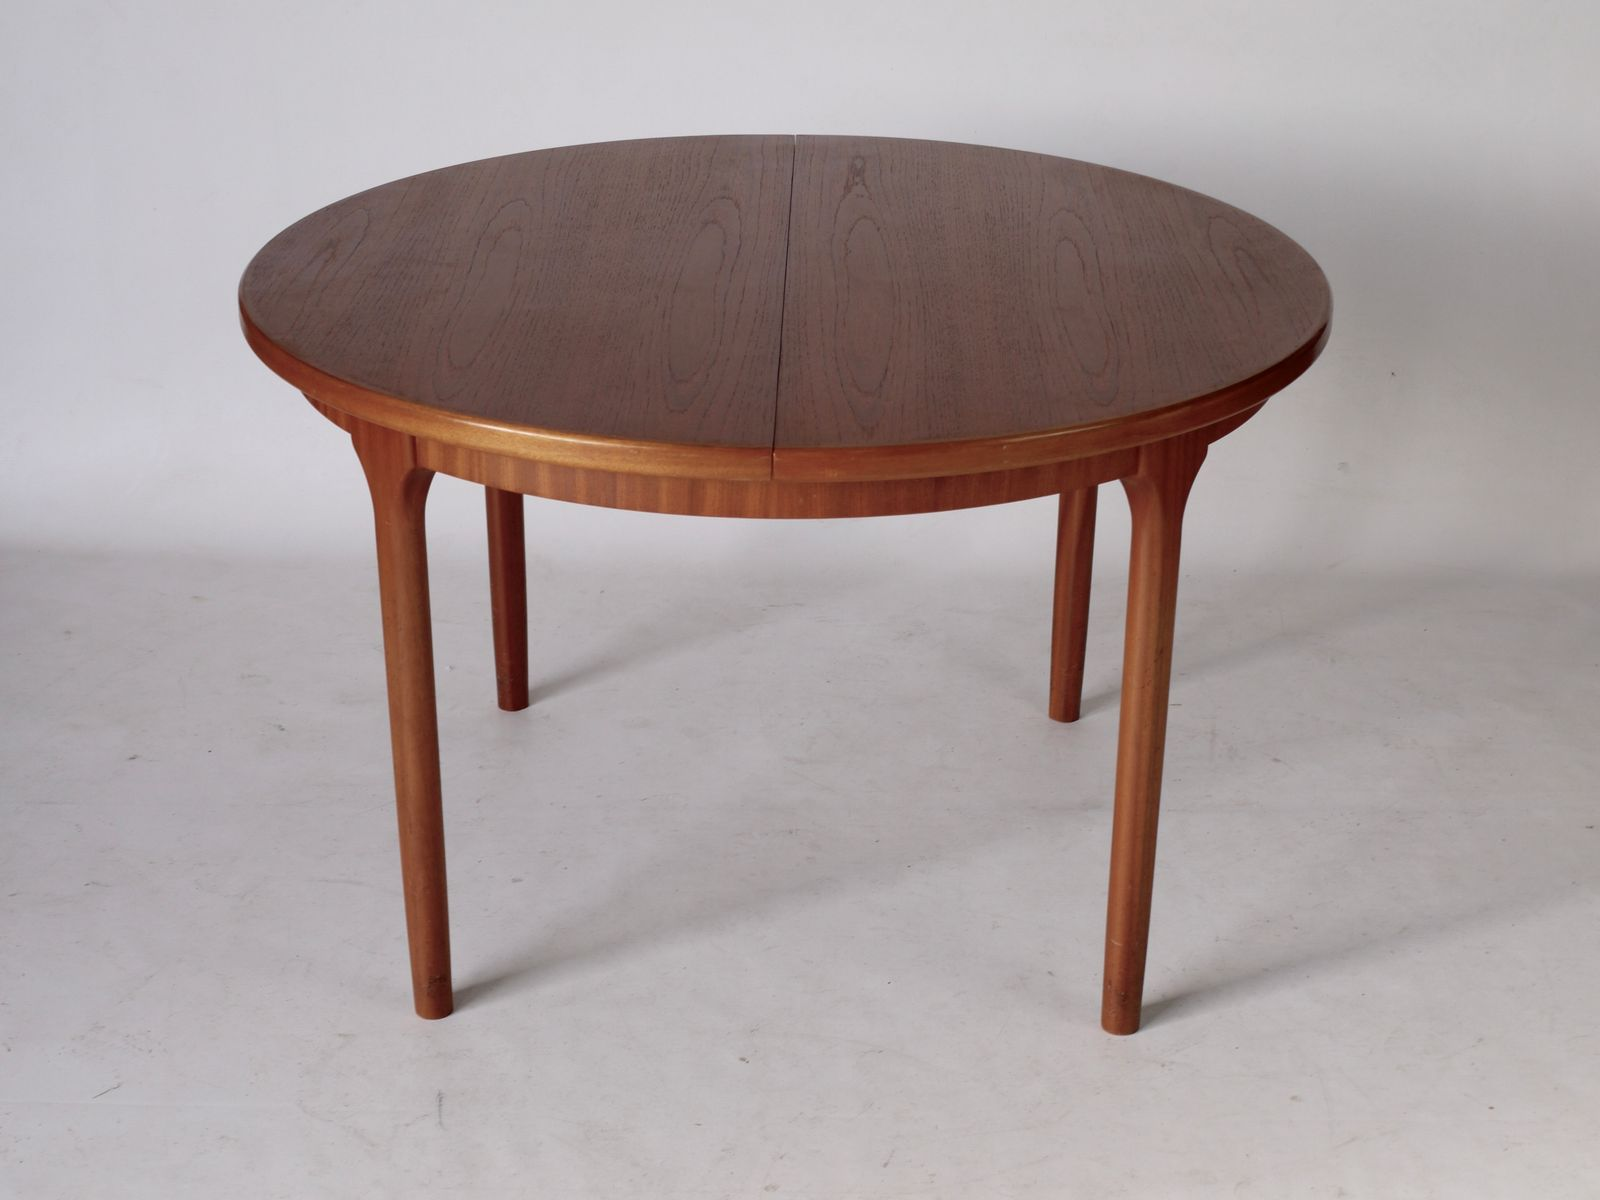 Teak Extendable Circular Dining Table From McIntosh 1970s For Sale At Pamono